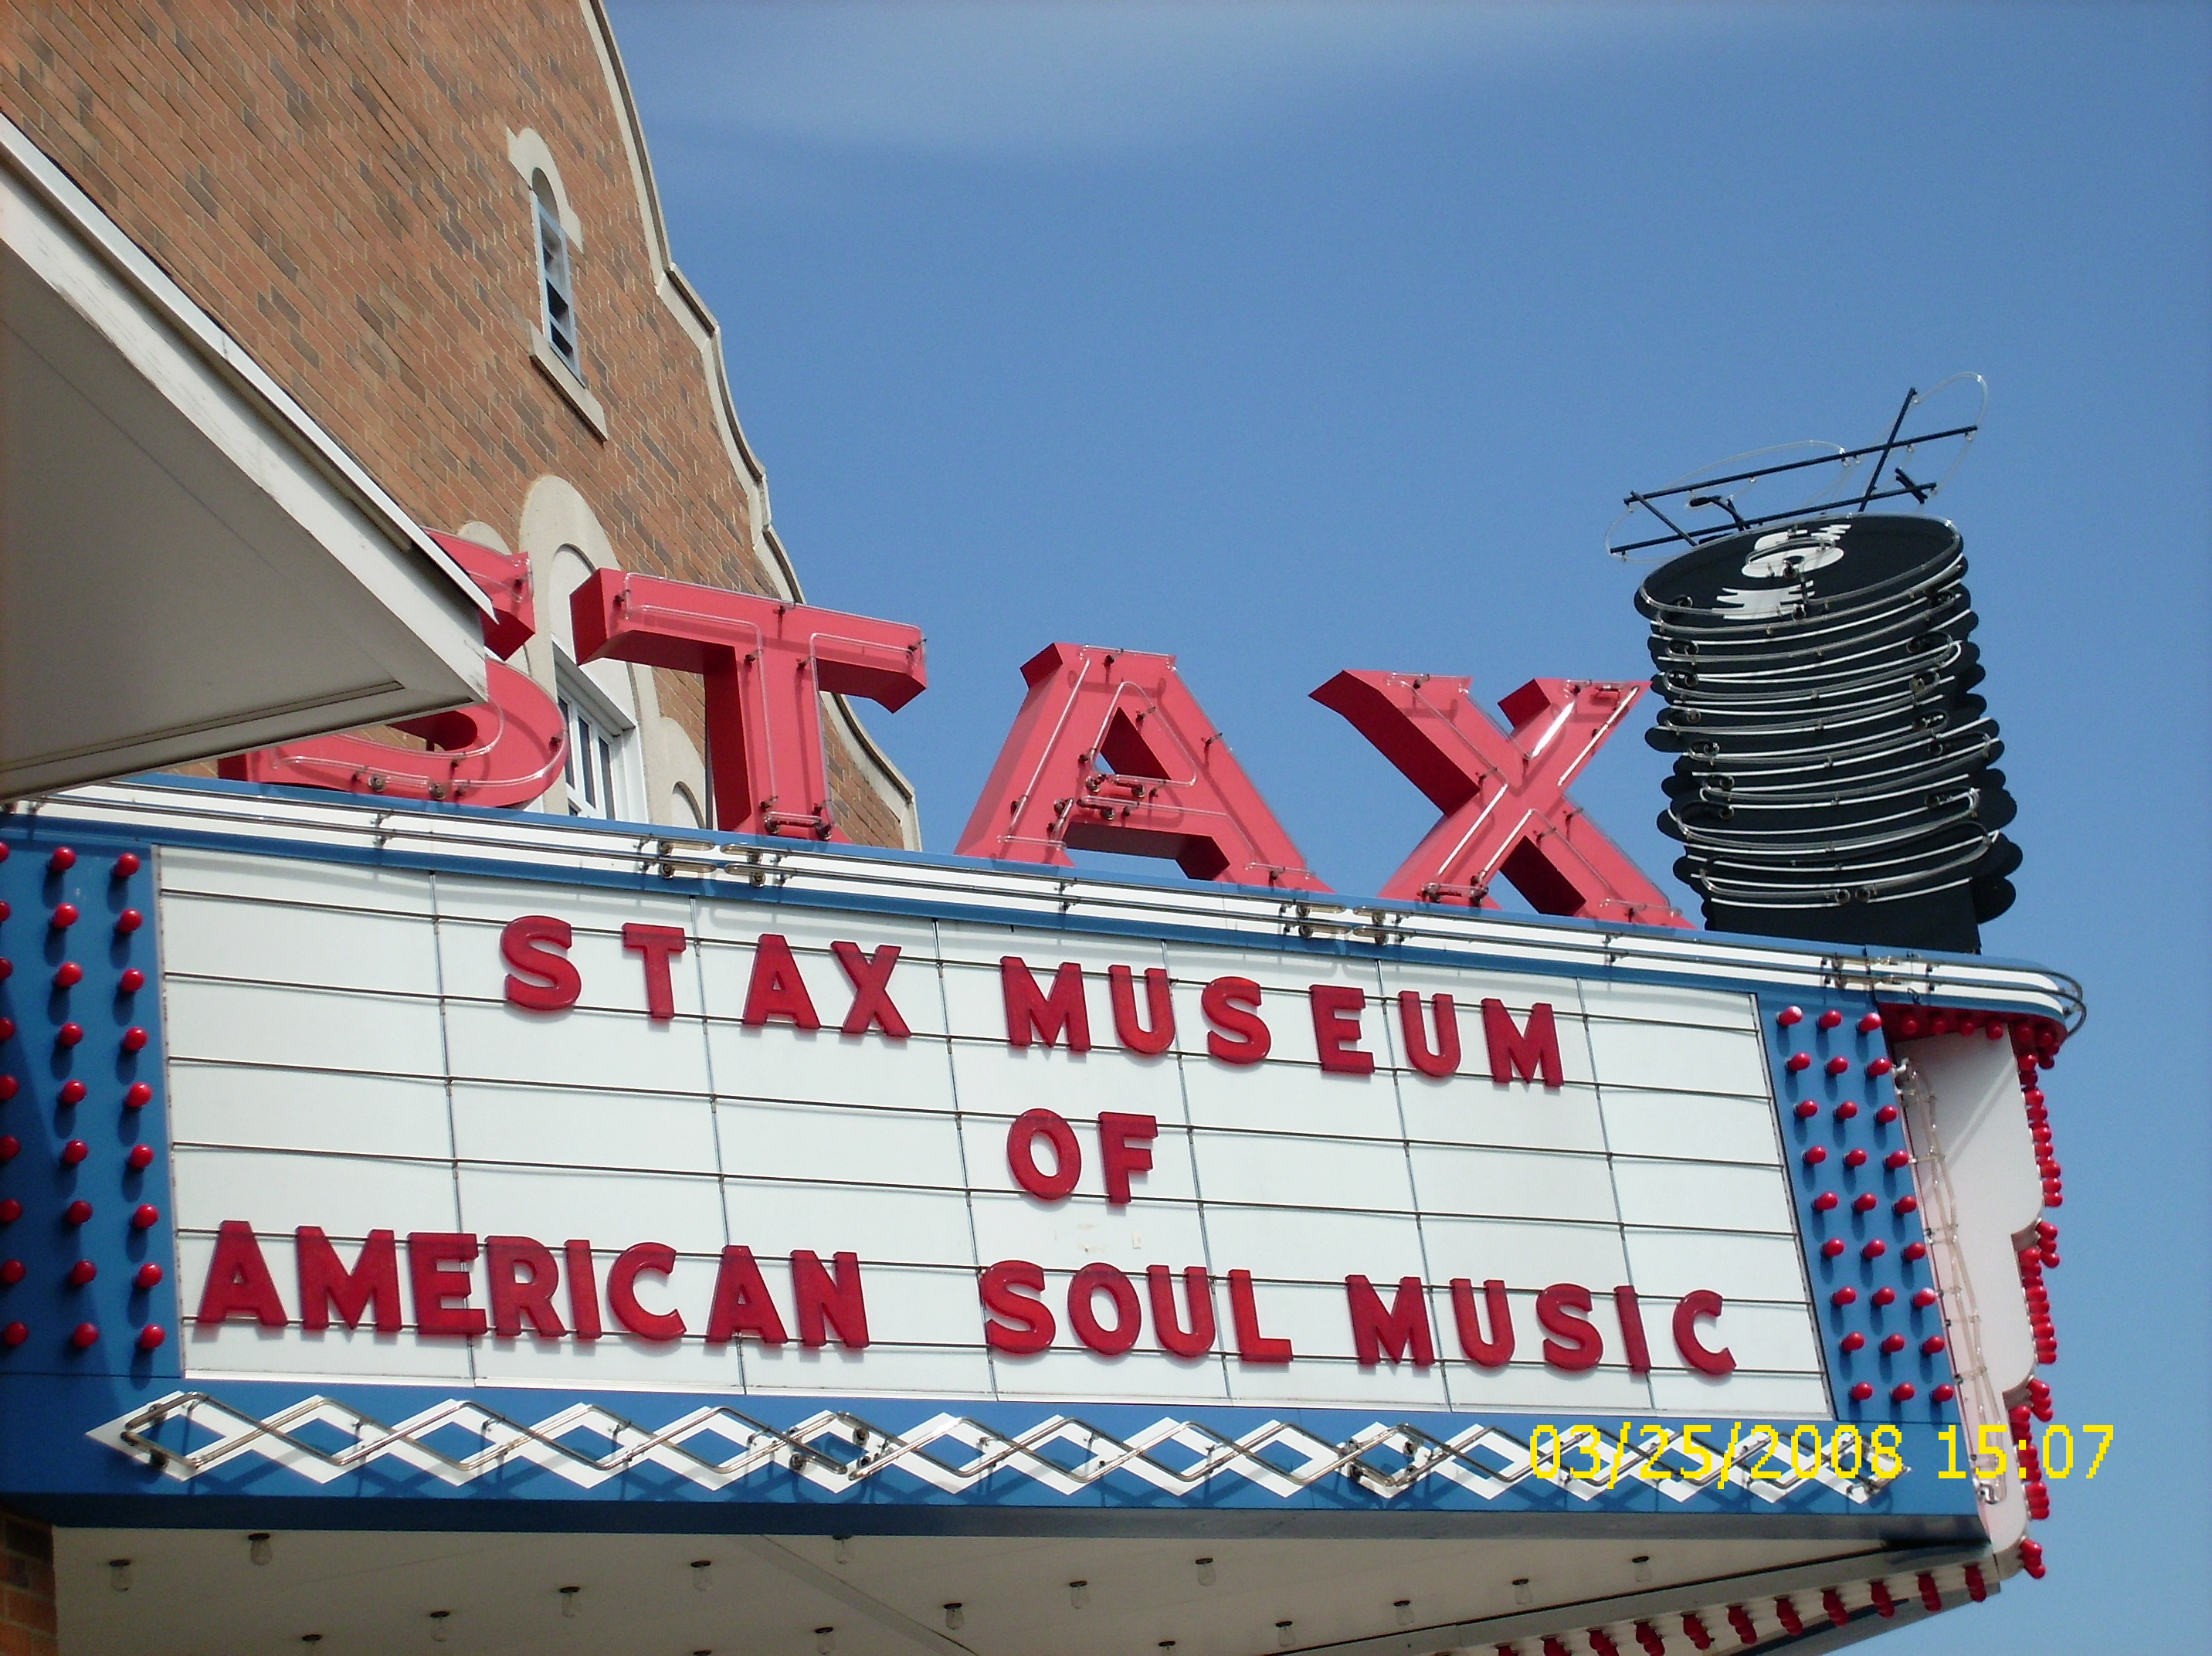 File:Stax Museum of American Soul Music marquee jpg - Wikimedia Commons